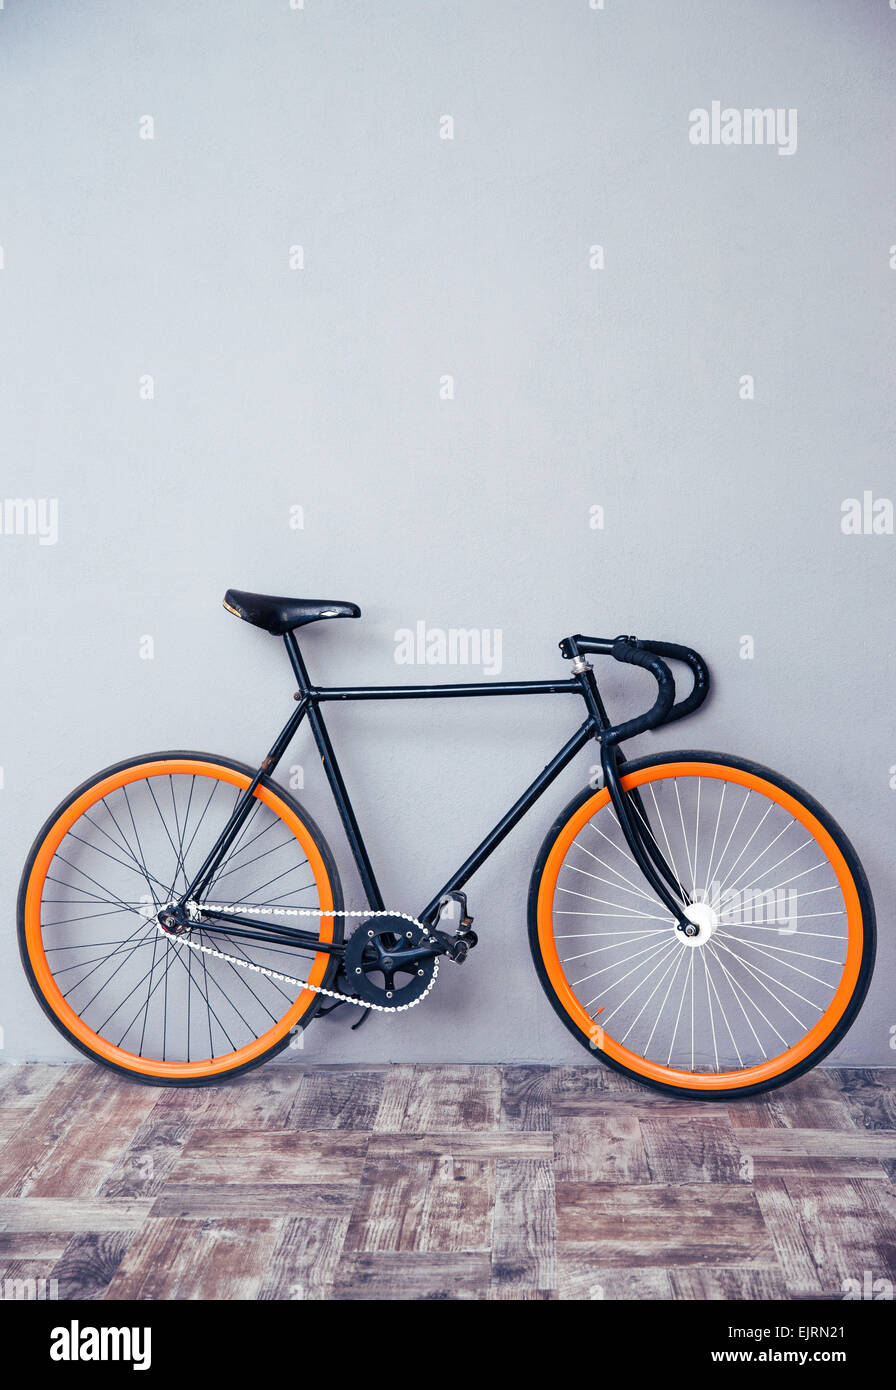 Closeup image of a bicycle at studio - Stock Image